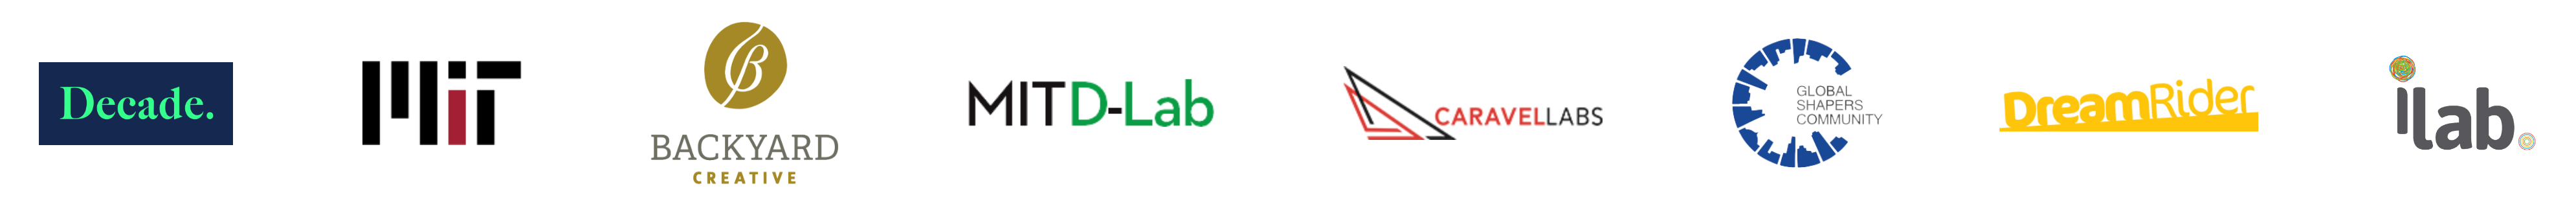 client logos like decade impact, mit, backyard creative, caravel labs, global shapers, dreamrider productions, and ilab